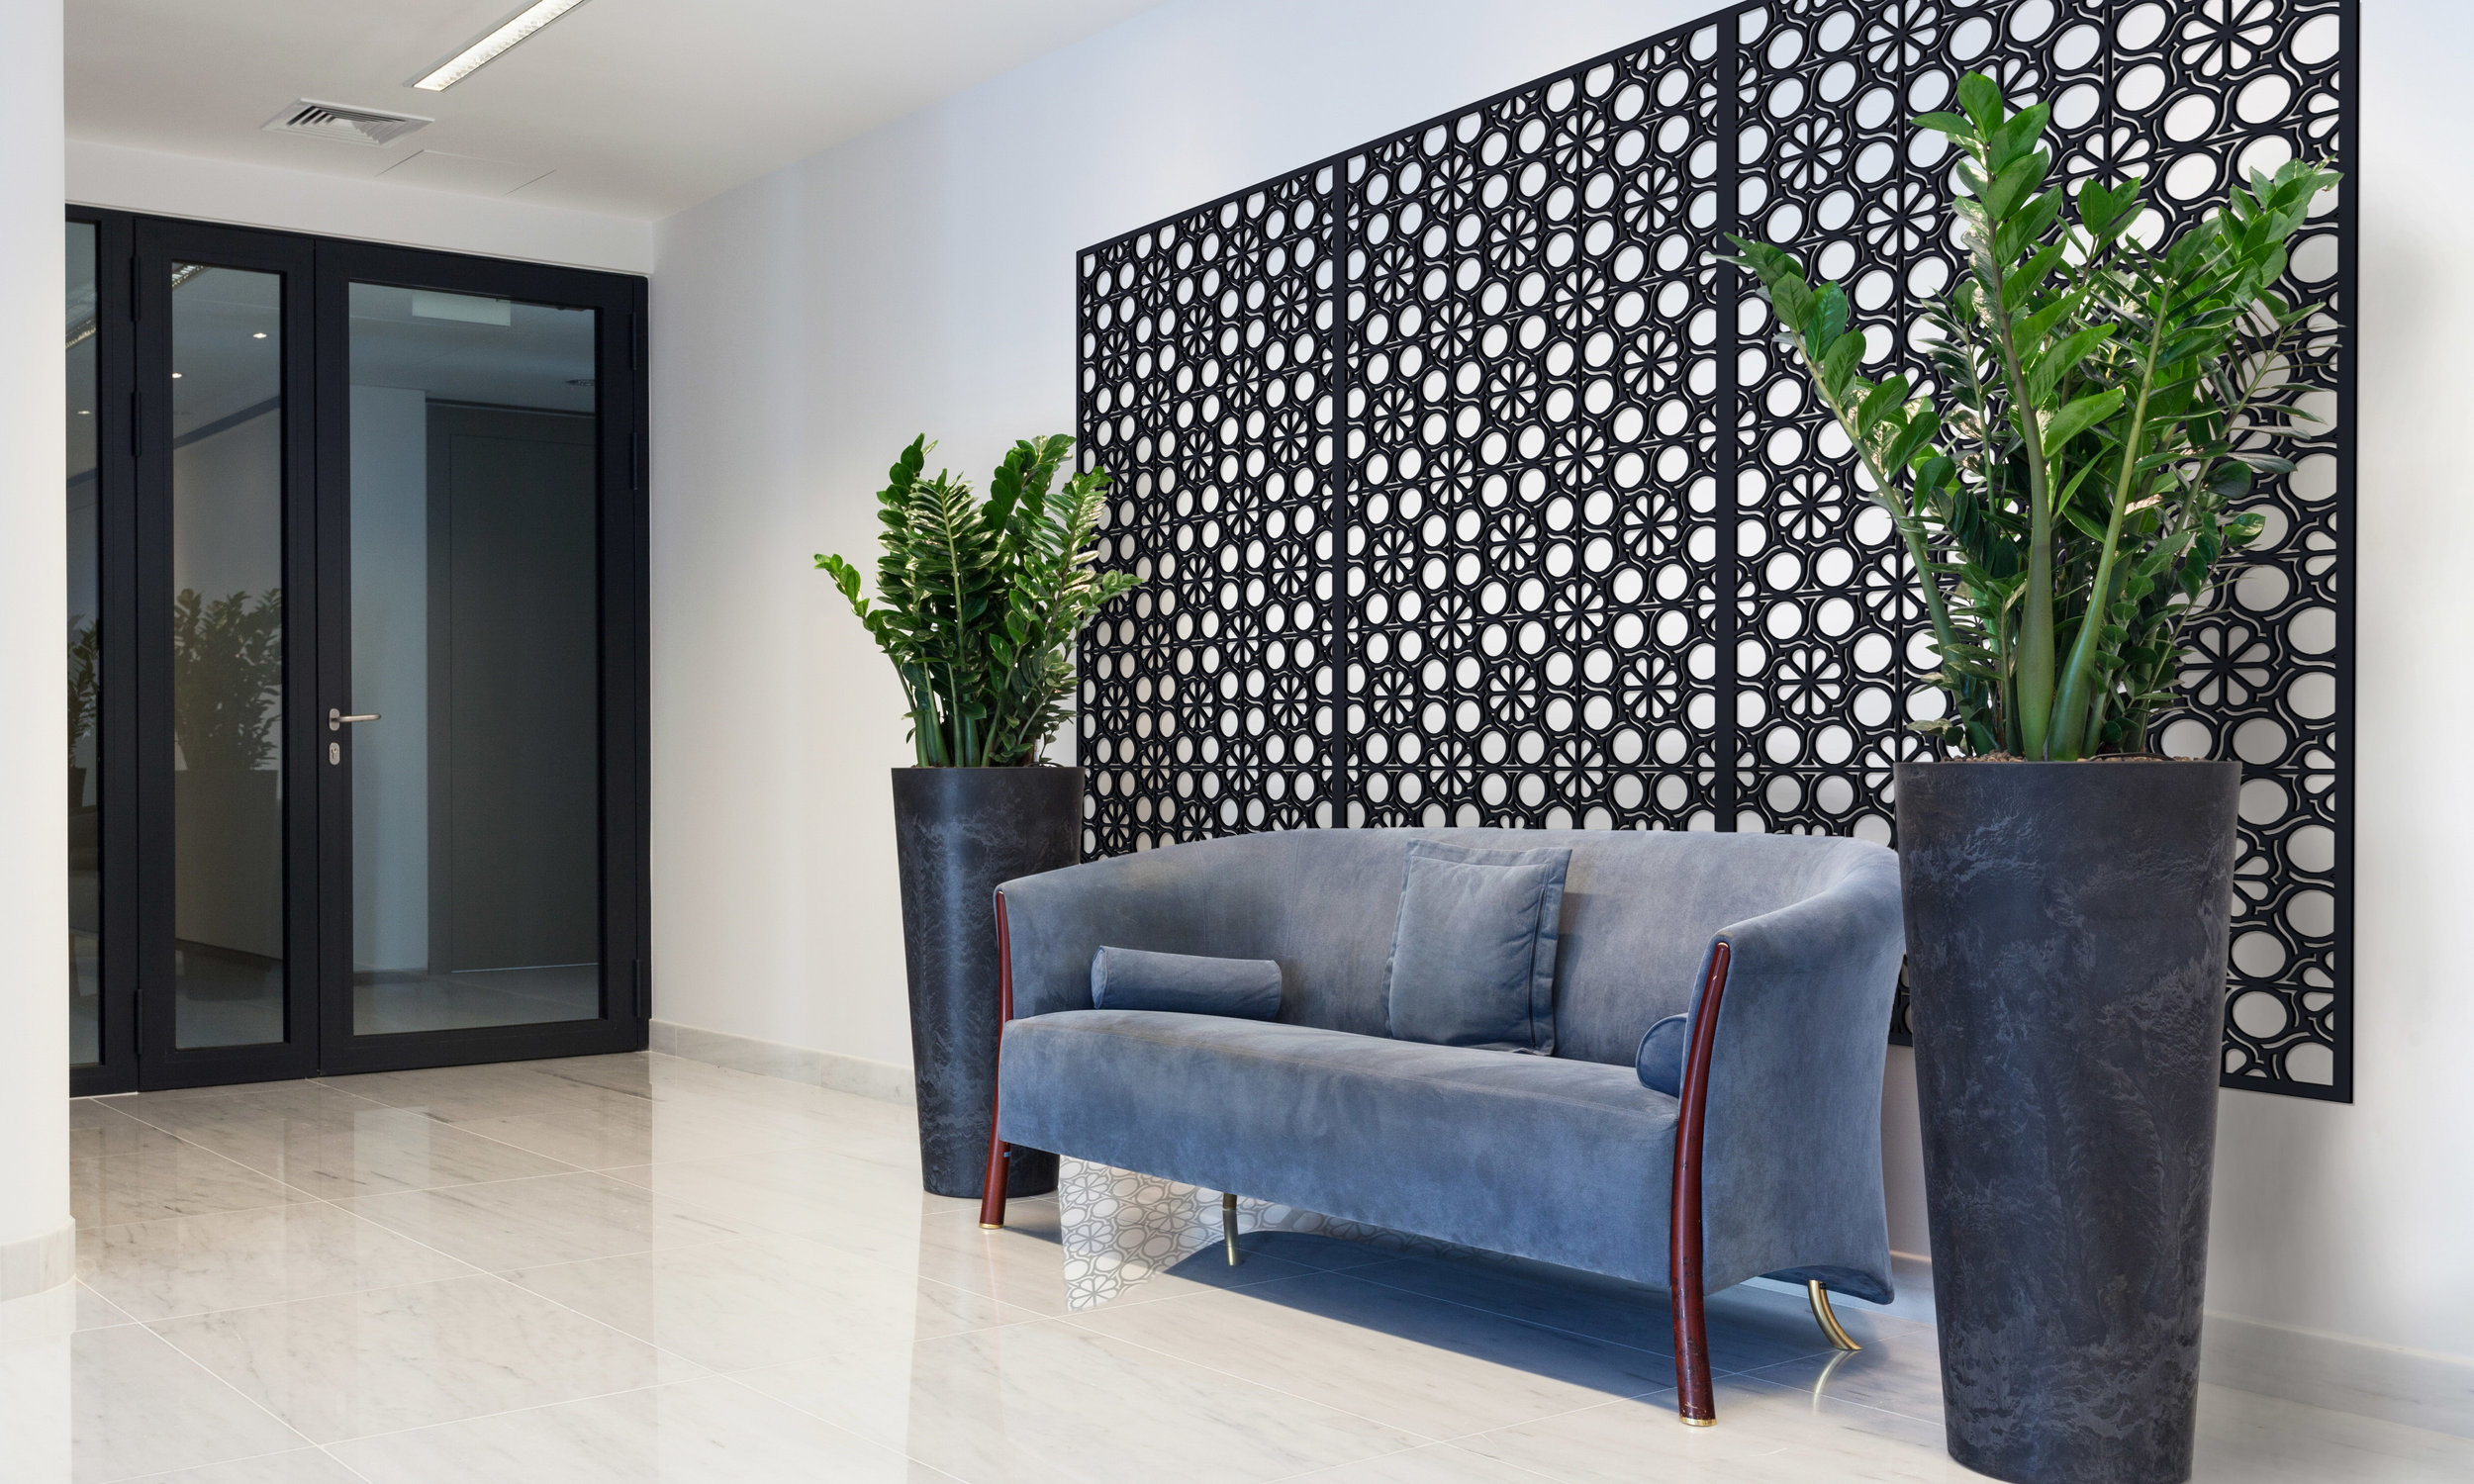 Installation Rendering B   Flower Circles decorative office wall panel - painted